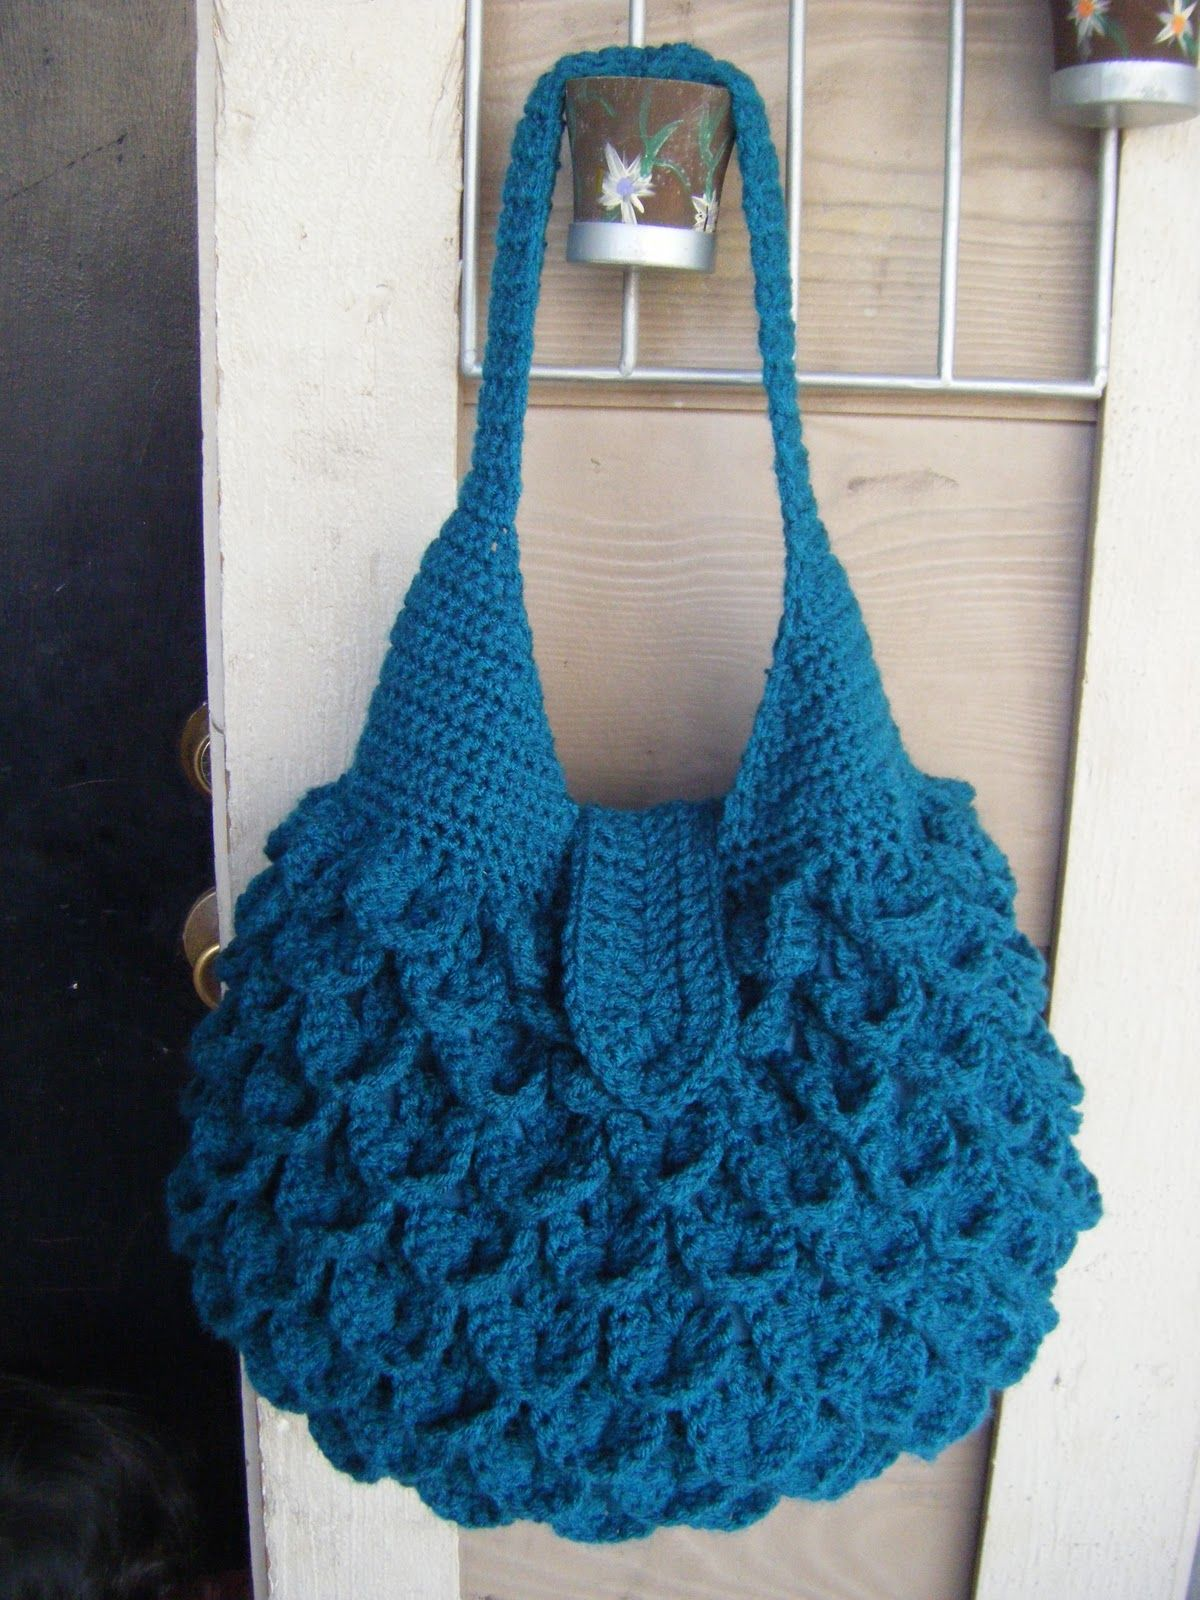 Free Purse Crochet Patterns, Free Bag Crochet Patterns from our ...